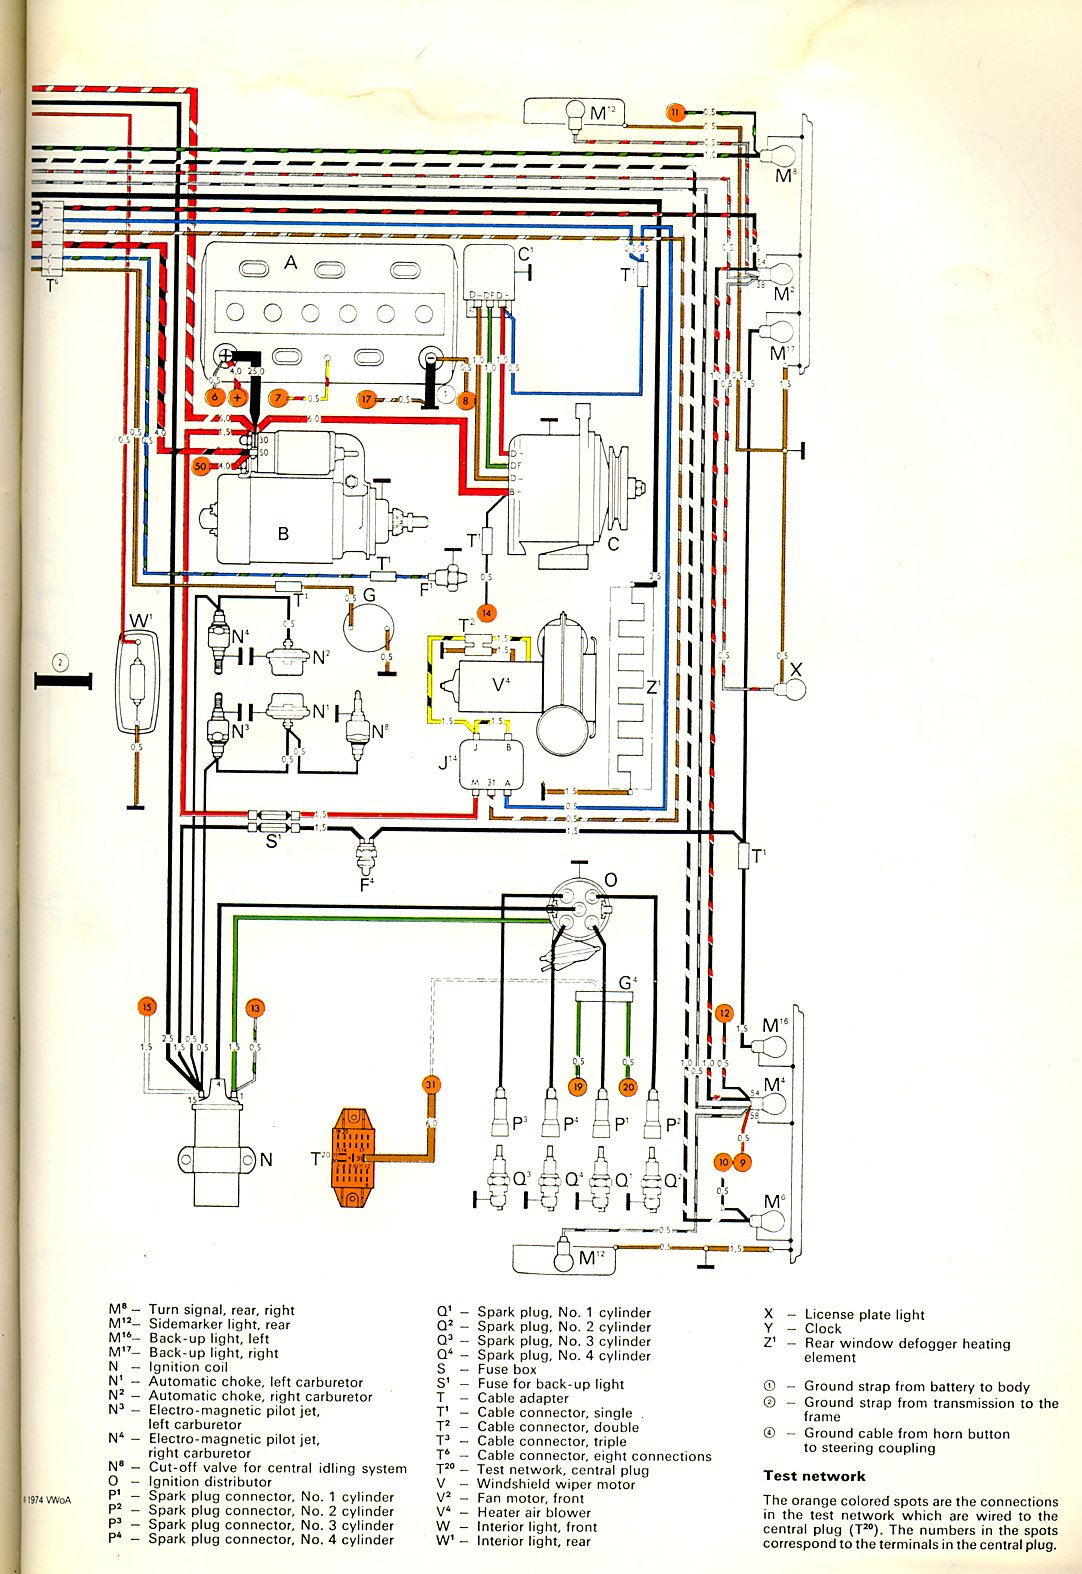 70 vw wiring diagram thesamba.com :: type 2 wiring diagrams 70 challenger wiring diagram